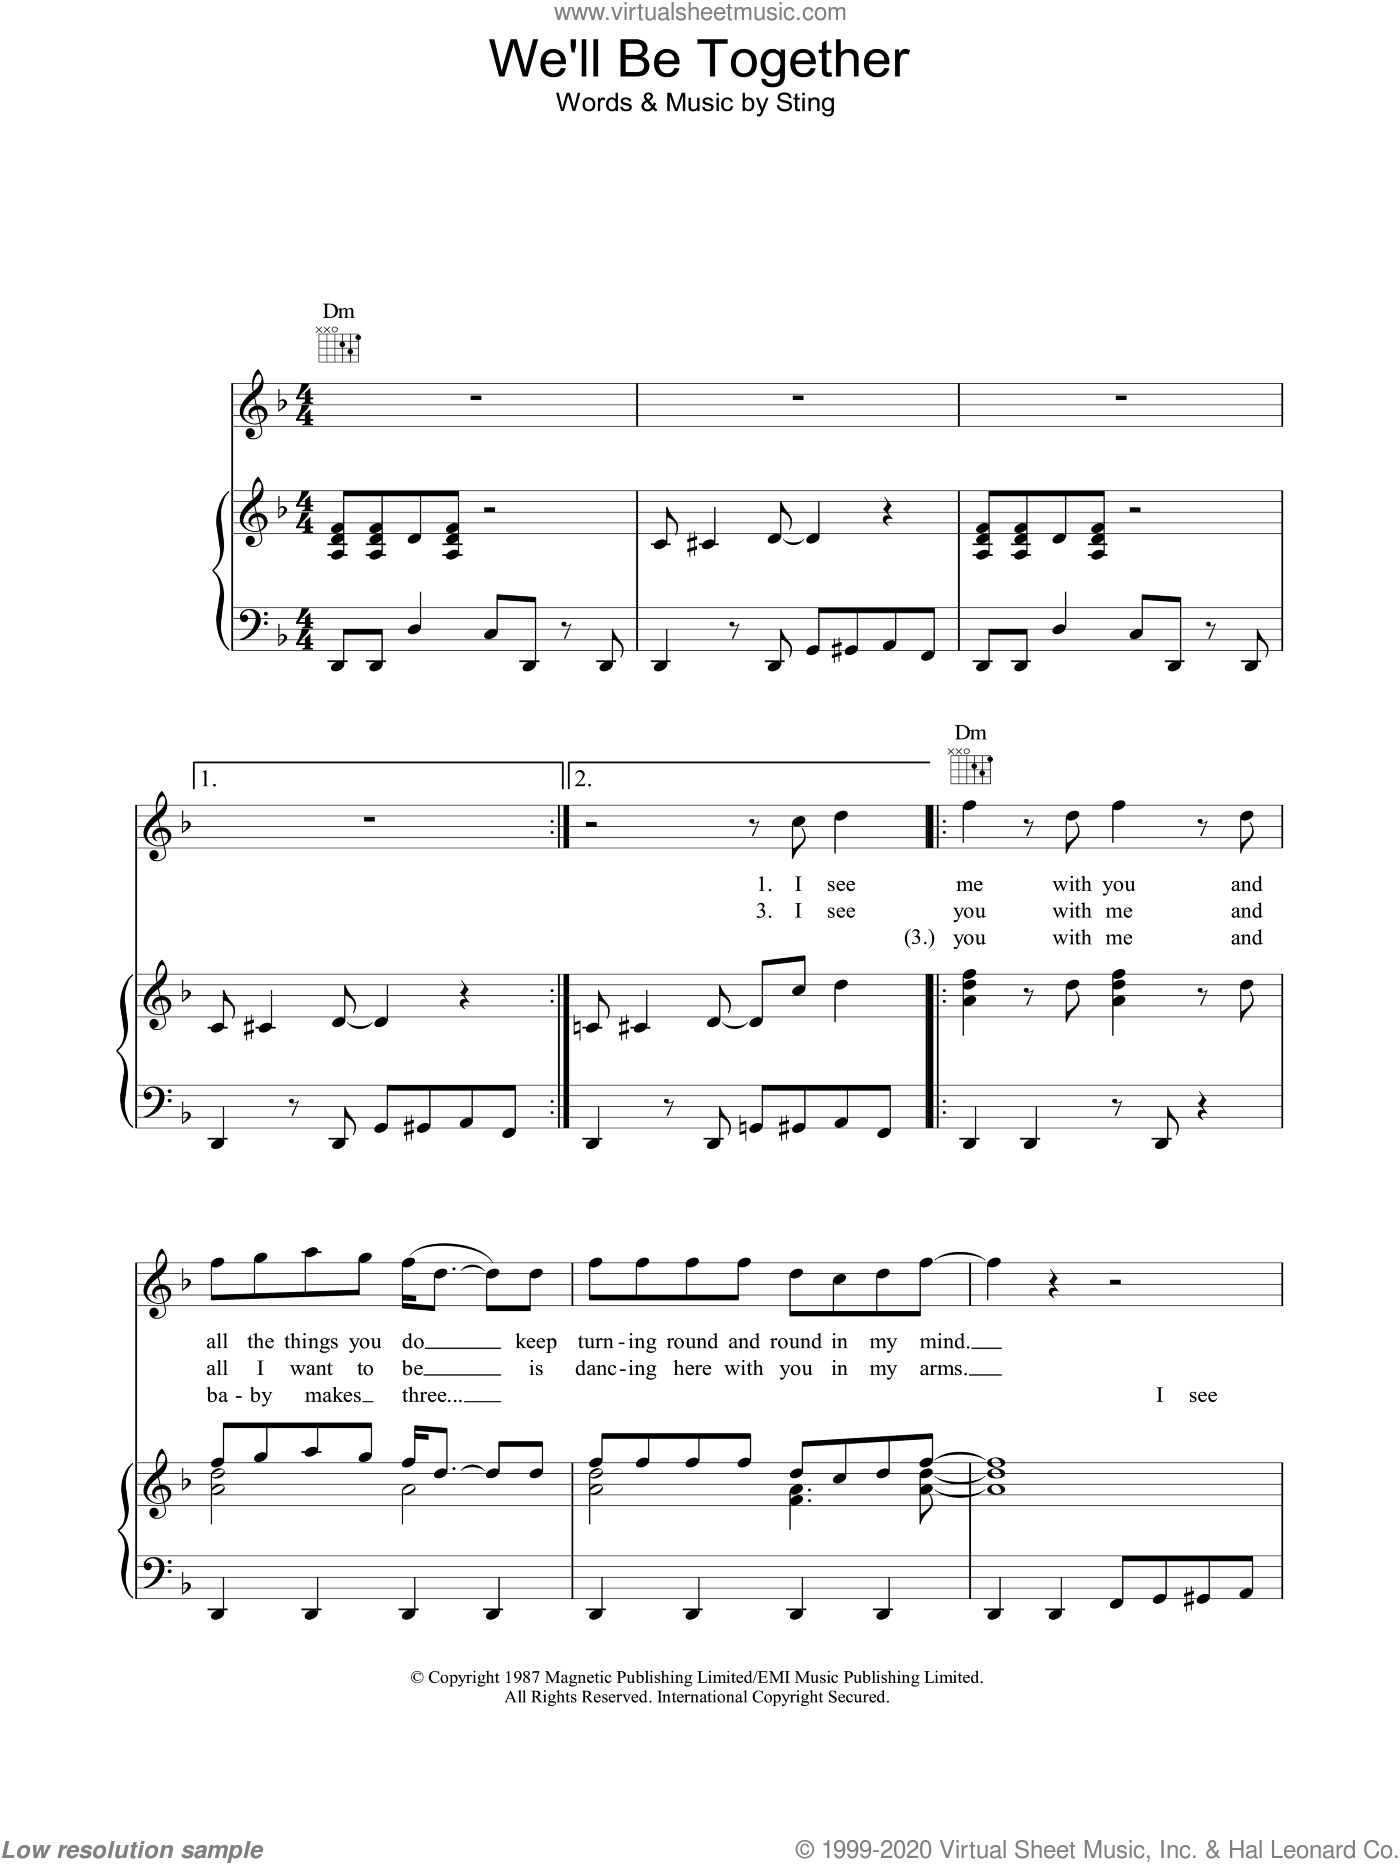 We'll Be Together sheet music for voice, piano or guitar by Sting. Score Image Preview.